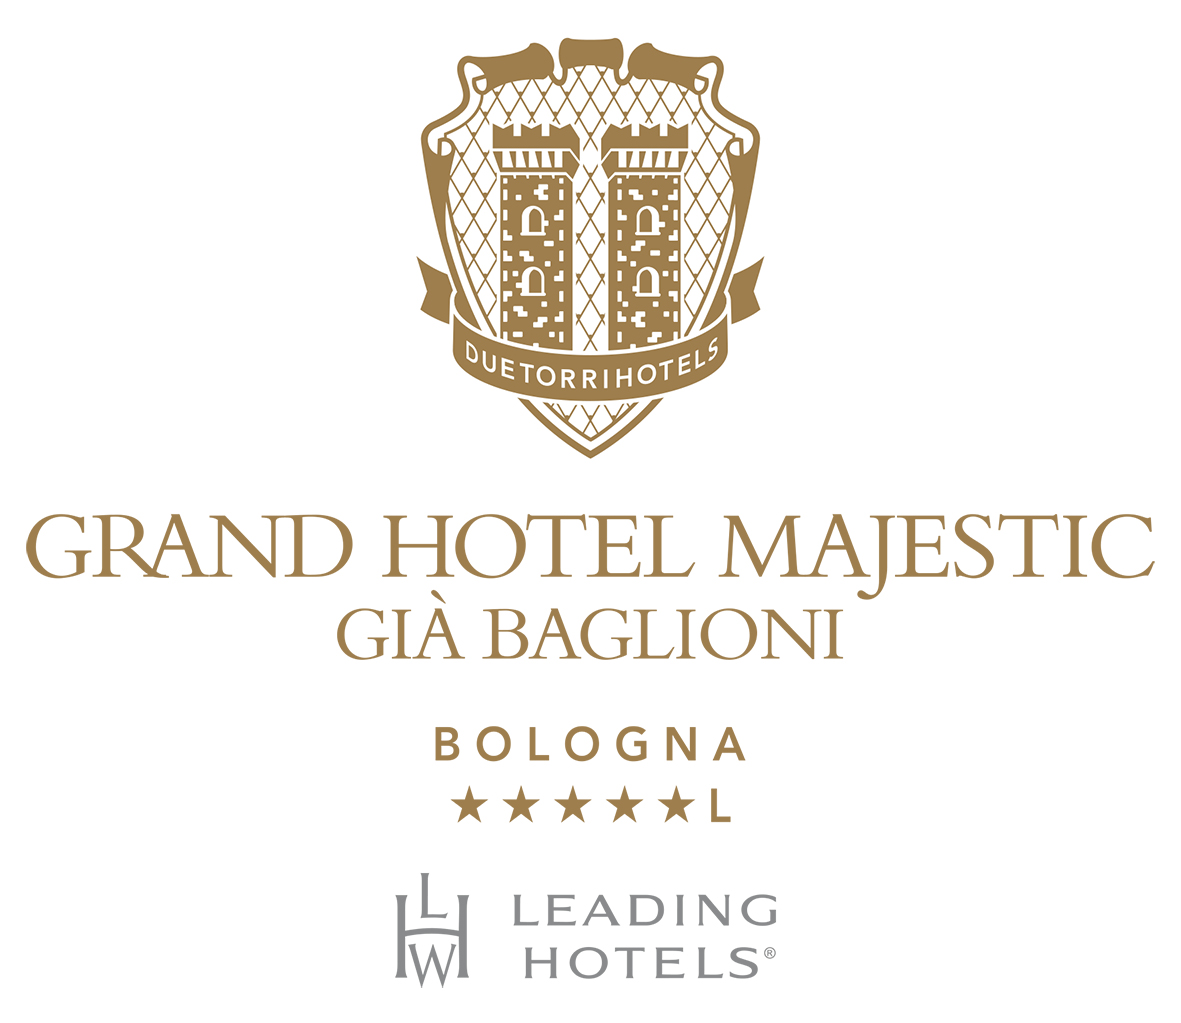 GRAND_HOTEL_MAJESTIC+leading